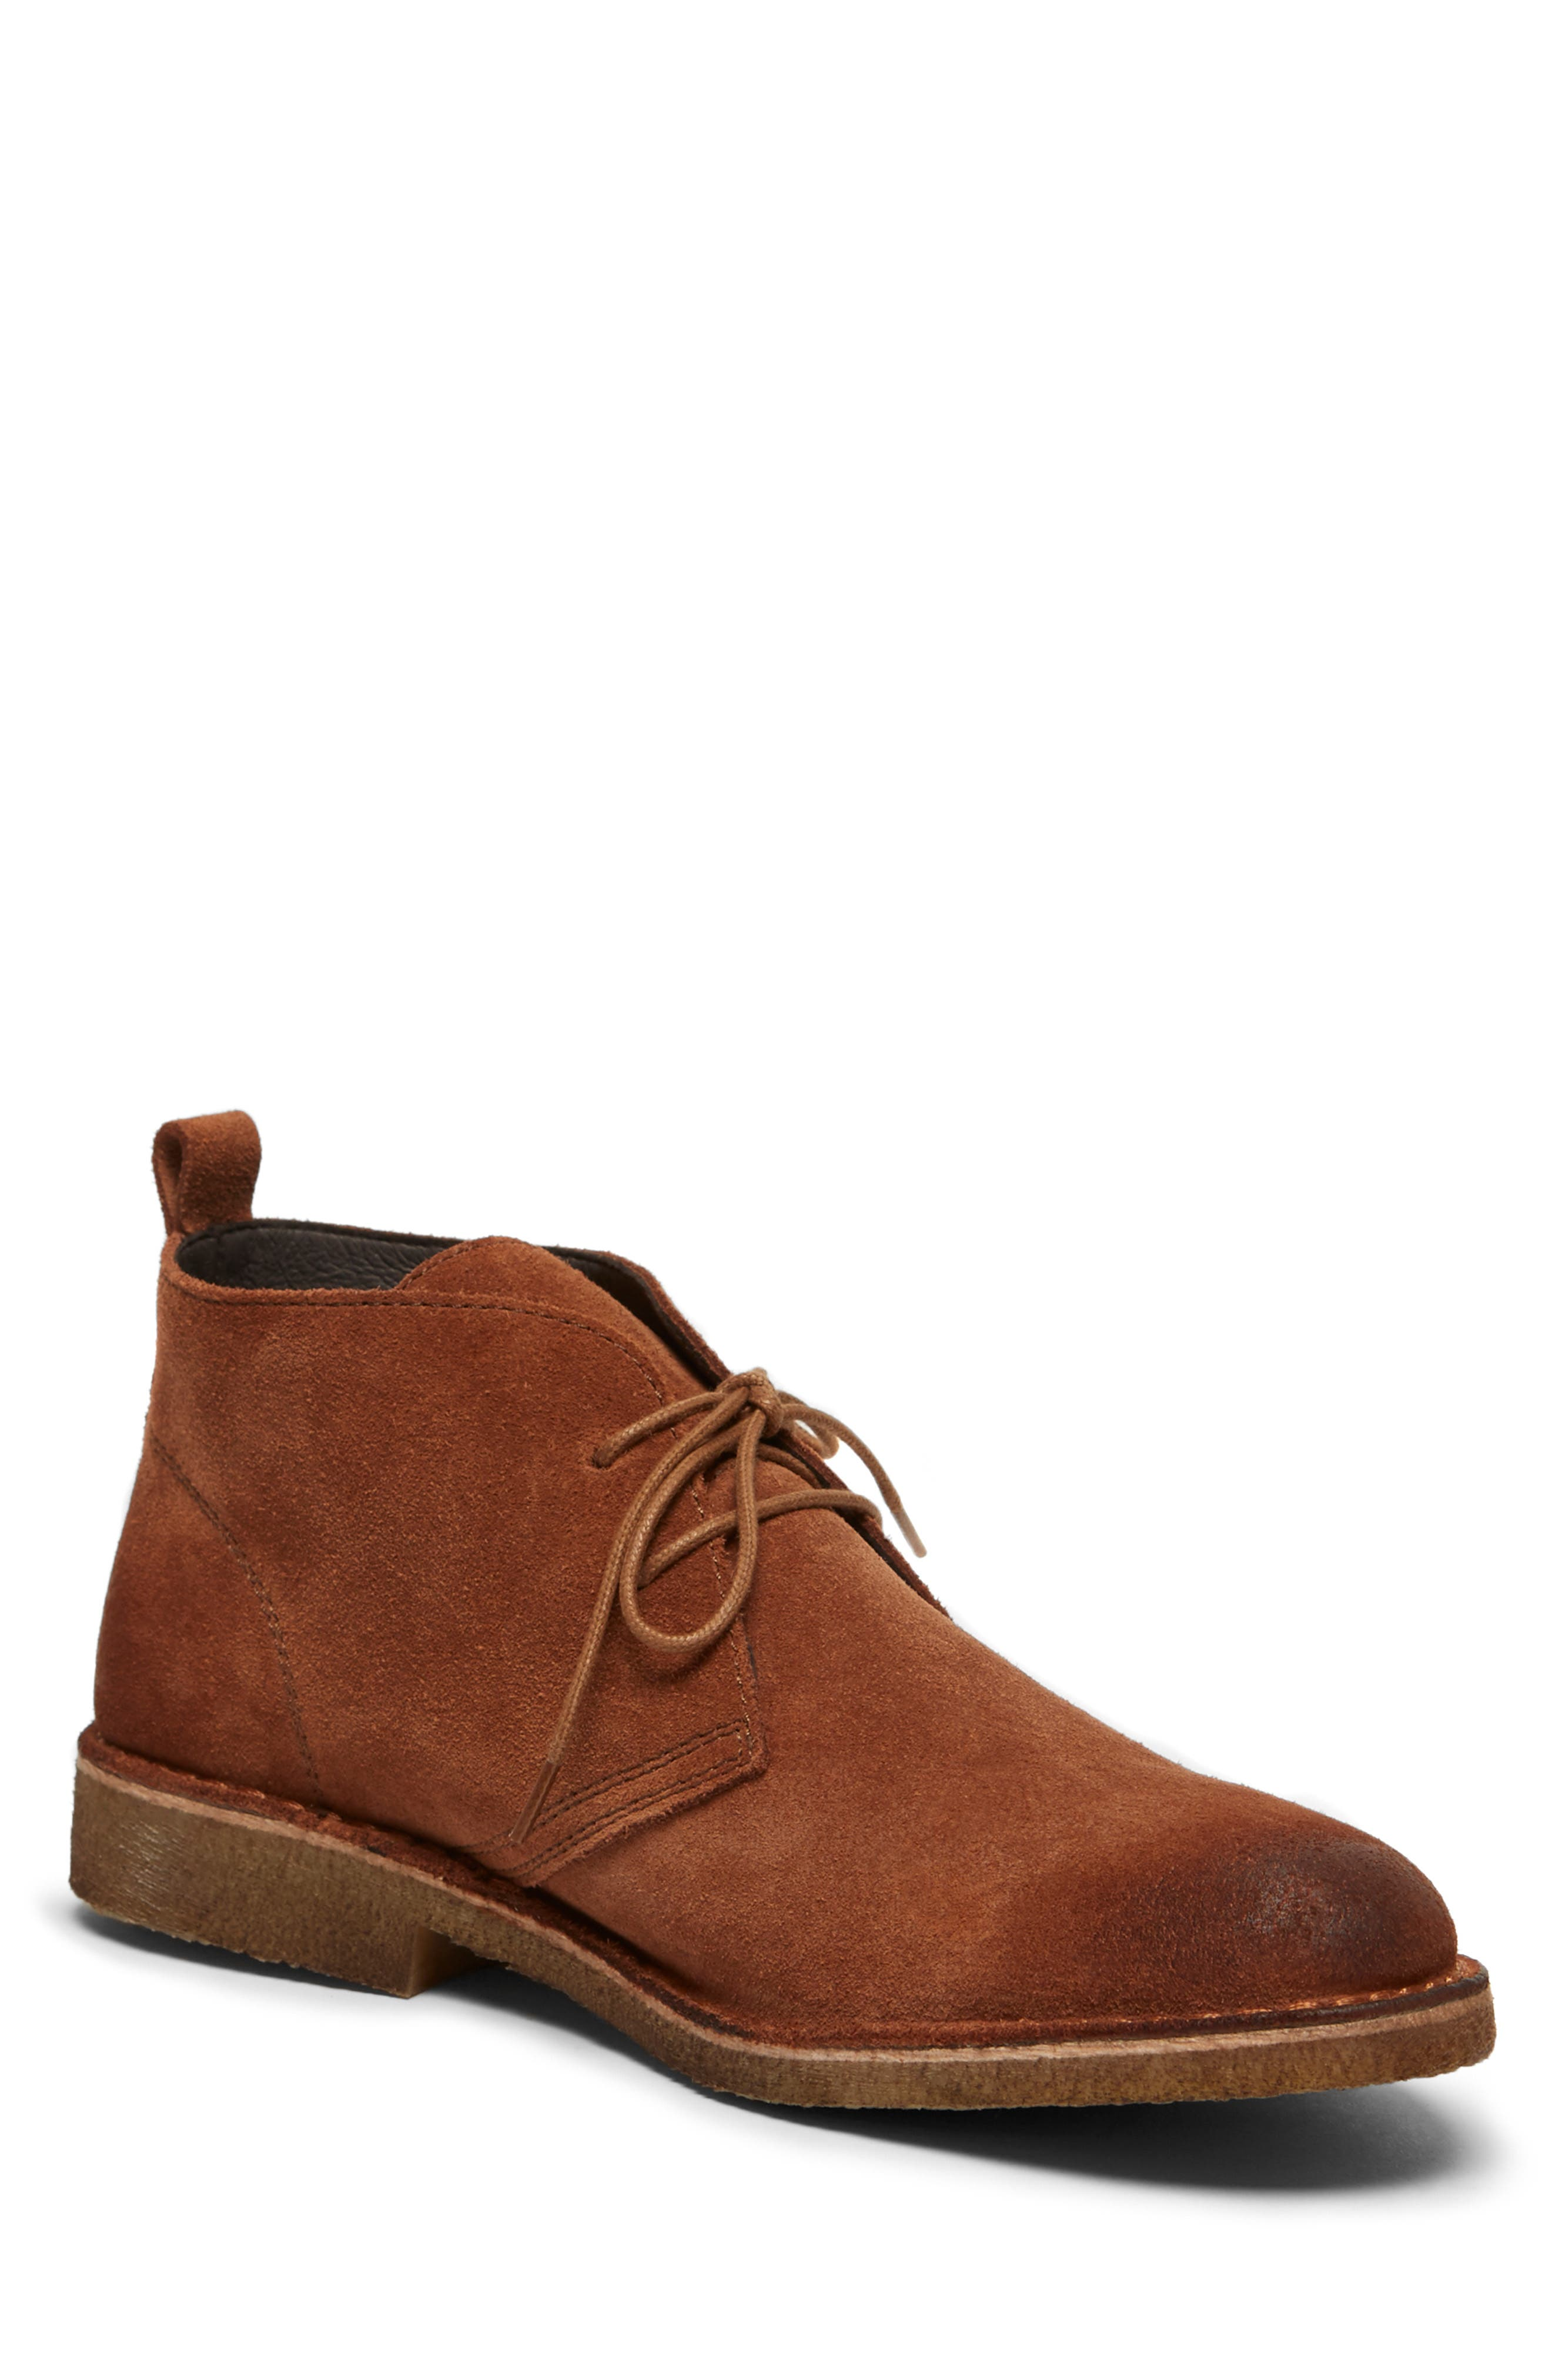 Hewitt Chukka Boot,                             Main thumbnail 1, color,                             RUST SUEDE